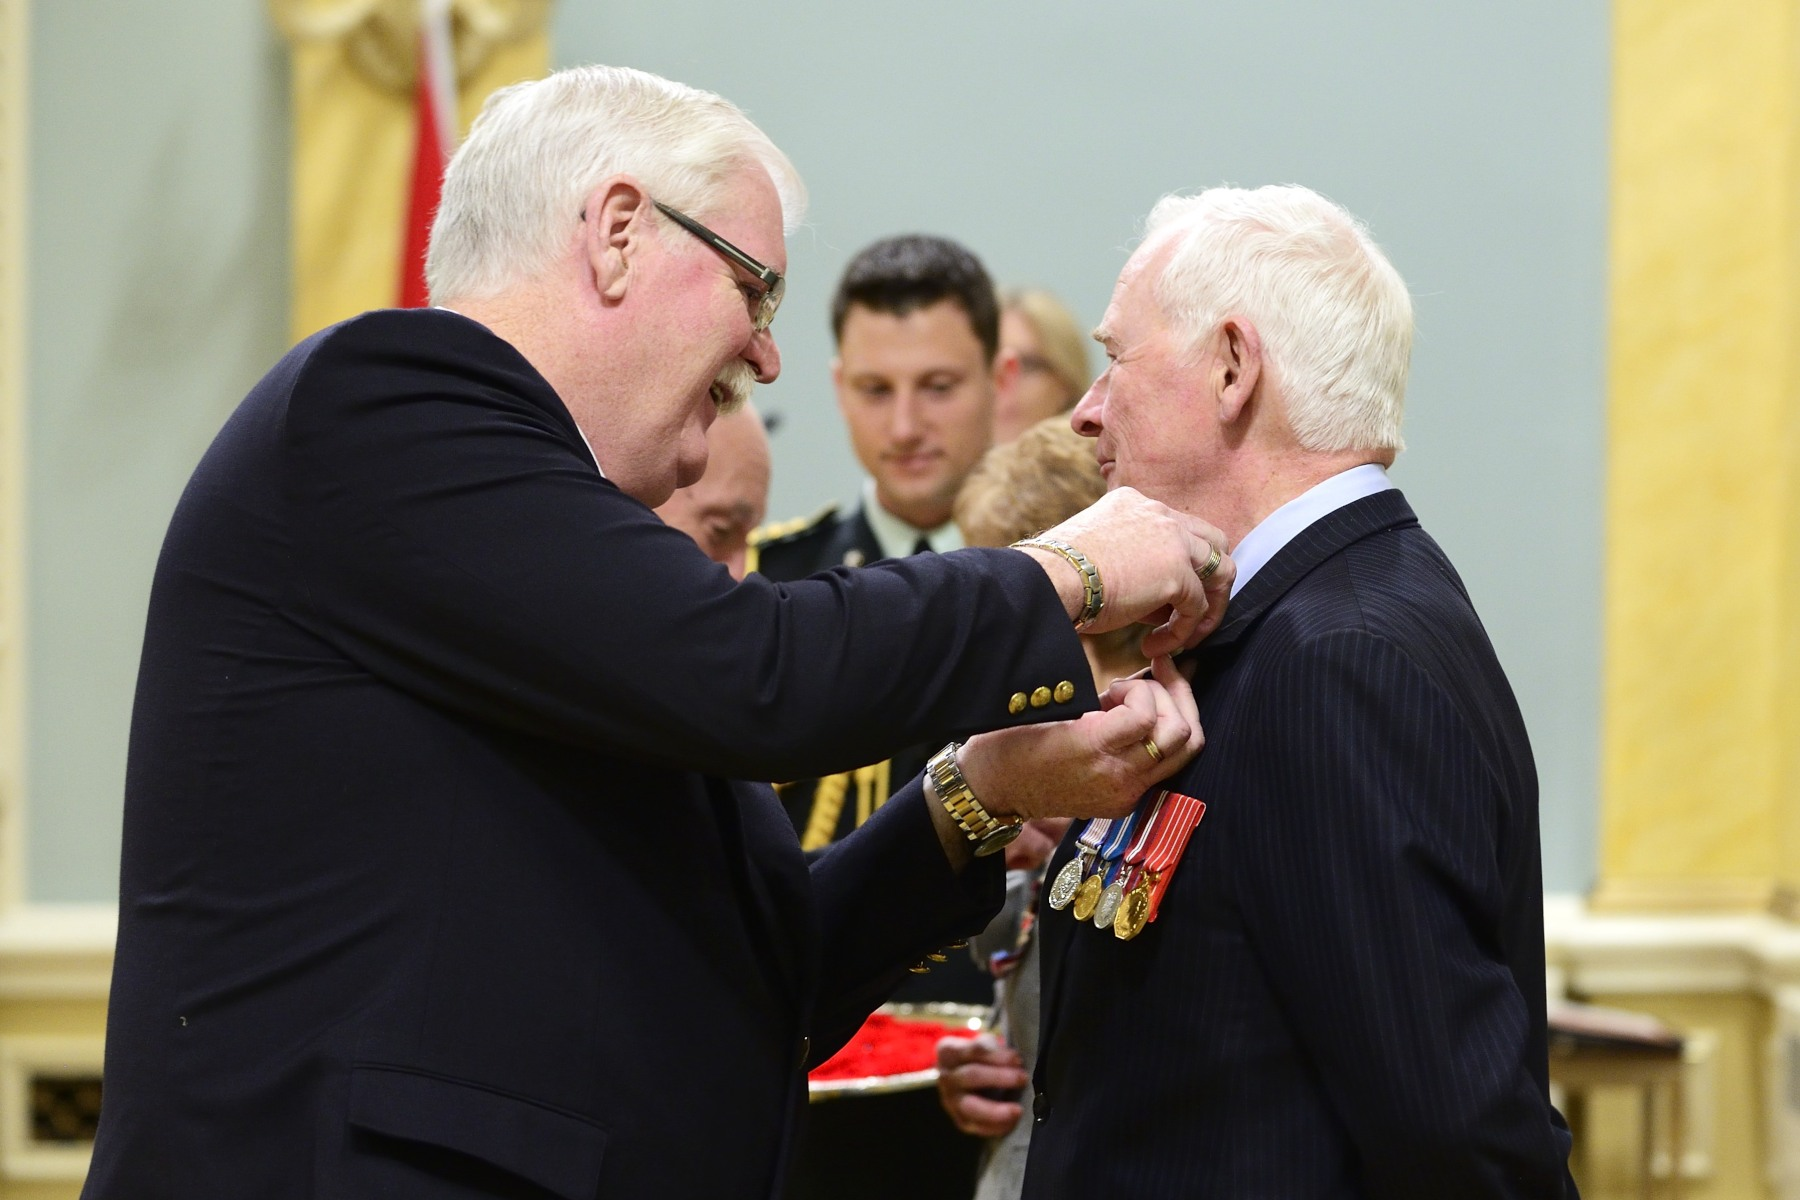 His Excellency received the symbolic first poppy of the campaign from Comrade Tom Eagles, Dominion President of The Royal Canadian Legion. Poppies will be available to the general public beginning Friday, October 30, 2015.